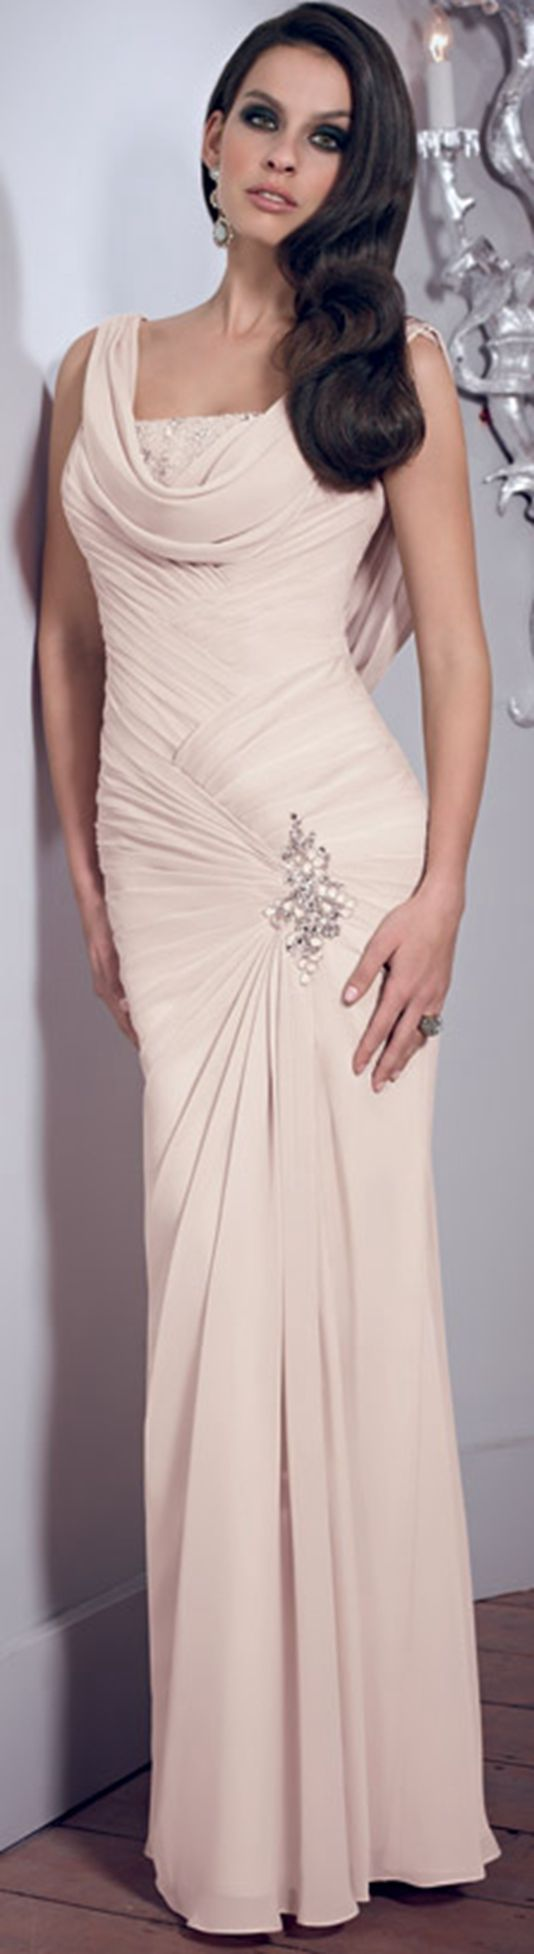 Elegant Sheath/Column Straps Beading Buttons Ruching Floor-length Chiffon Mother of the Bride Dresses